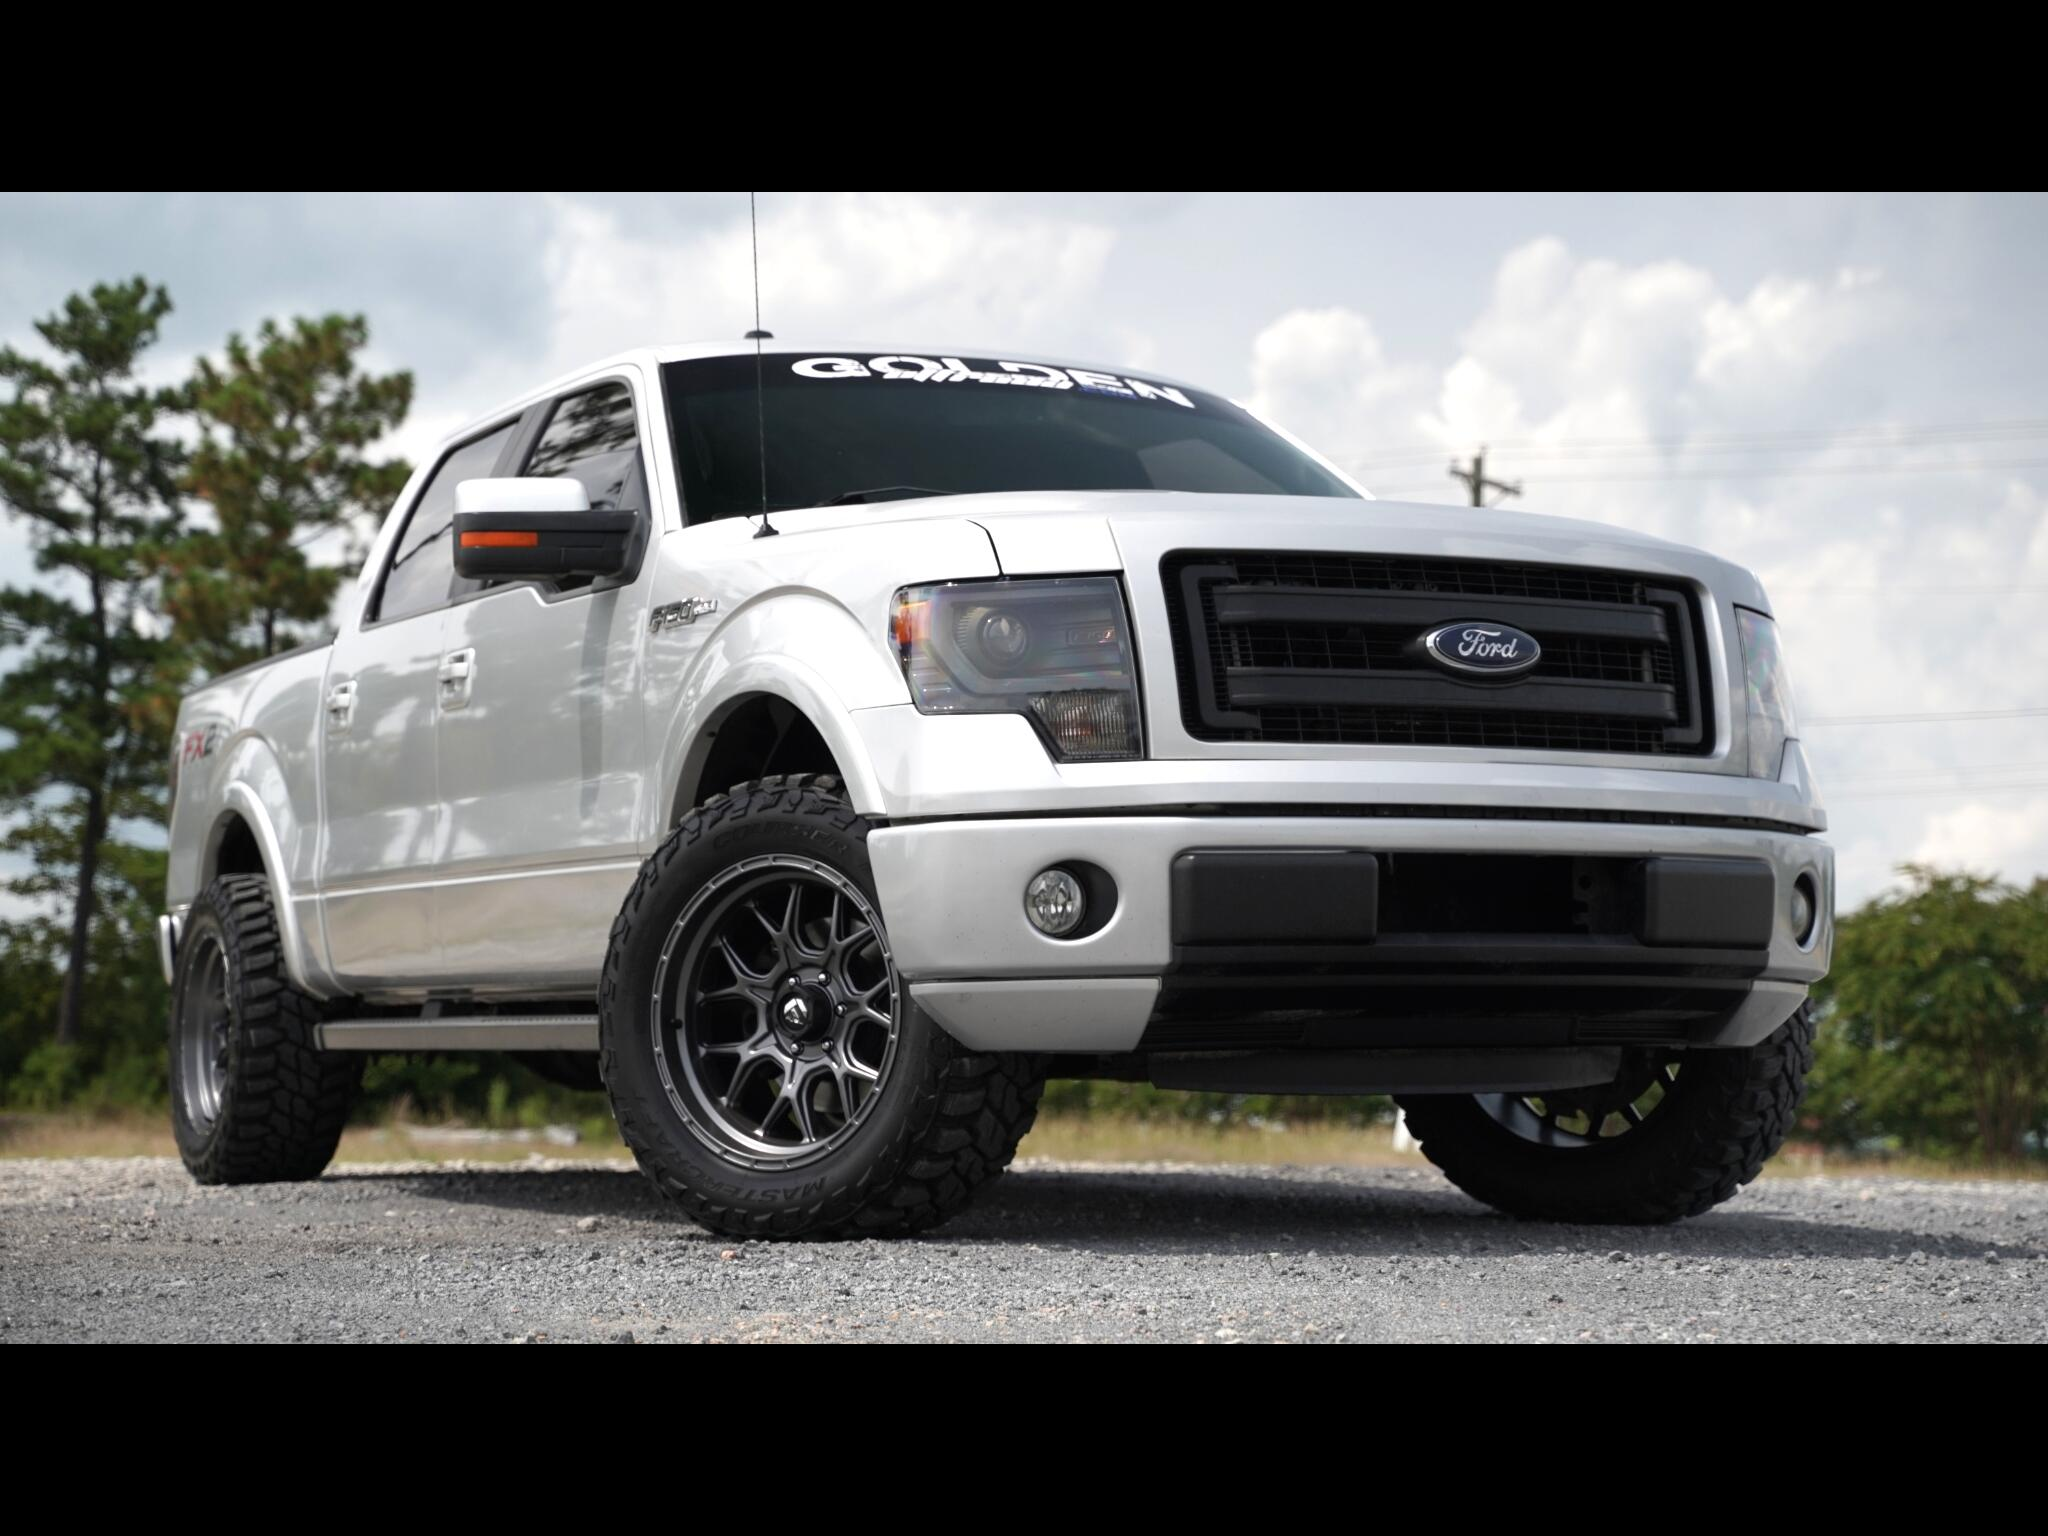 2013 Ford F-150 FX2 Lifted Loaded 5.0 Coyote V8 Leather Fuel Lifte